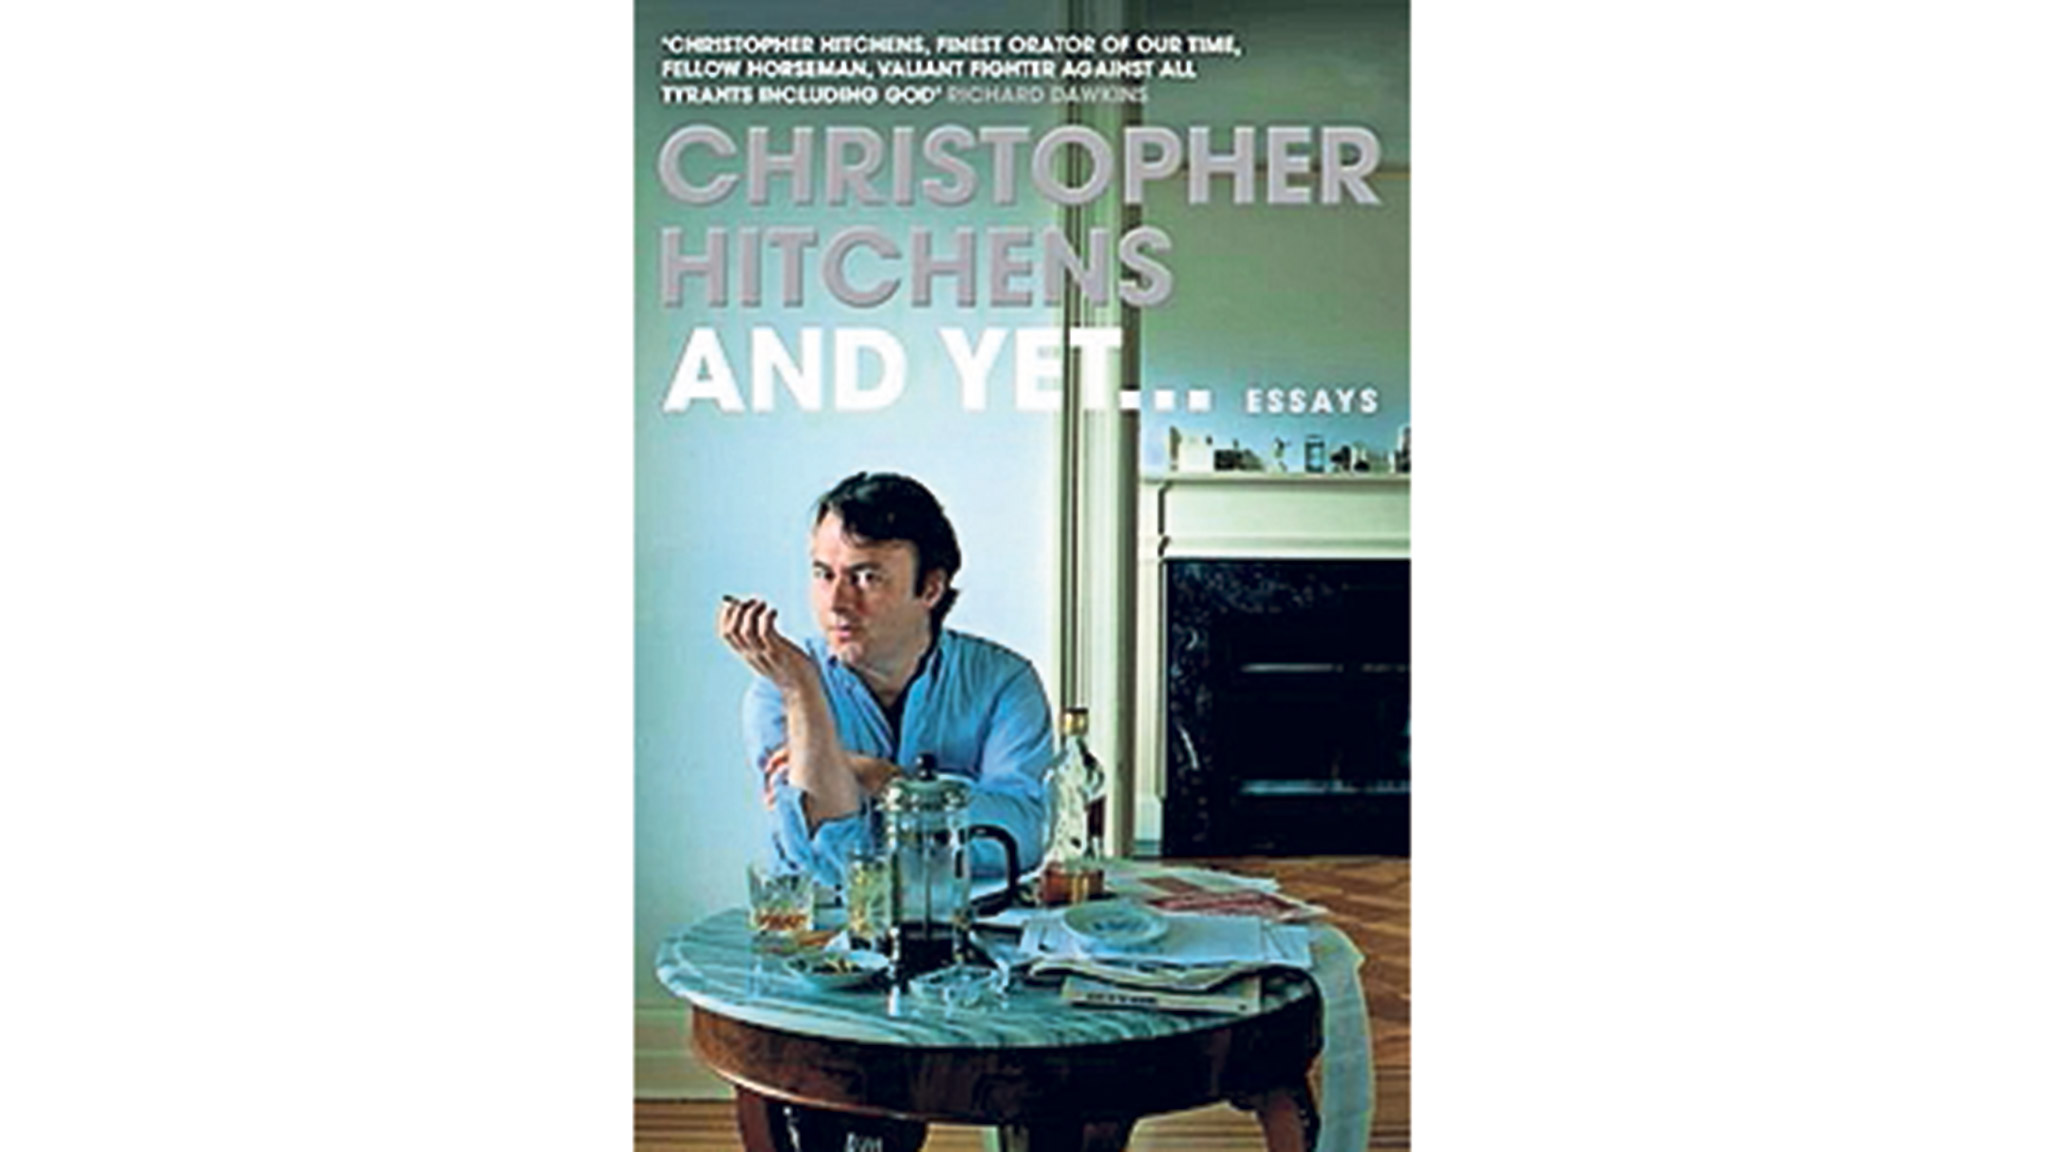 And yet essays by christopher hitchens financial times